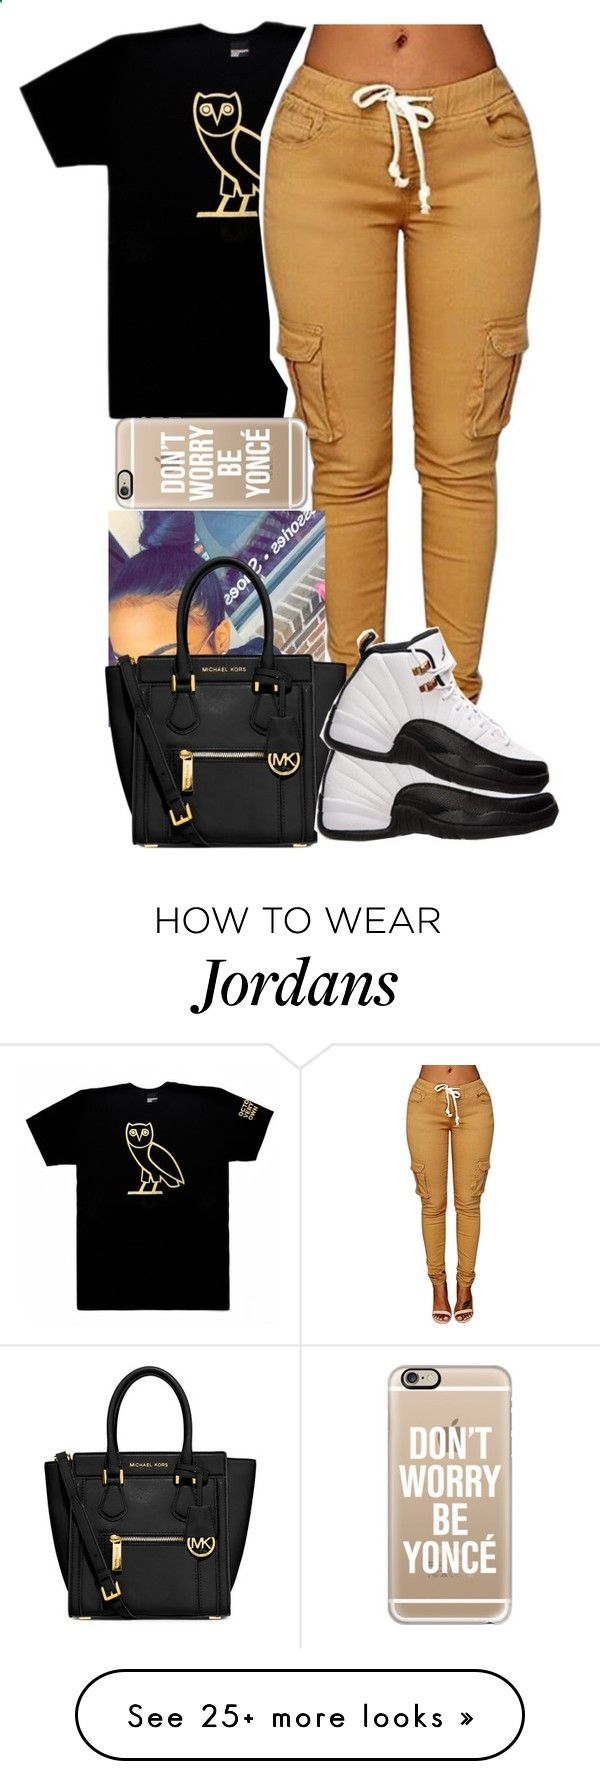 ~game changer by nya-hayward on Polyvore featuring Octobers Very Own, Casetify, MICHAEL Michael Kors and Retrò Adidas women shoes - amzn.to/2jB6Udm